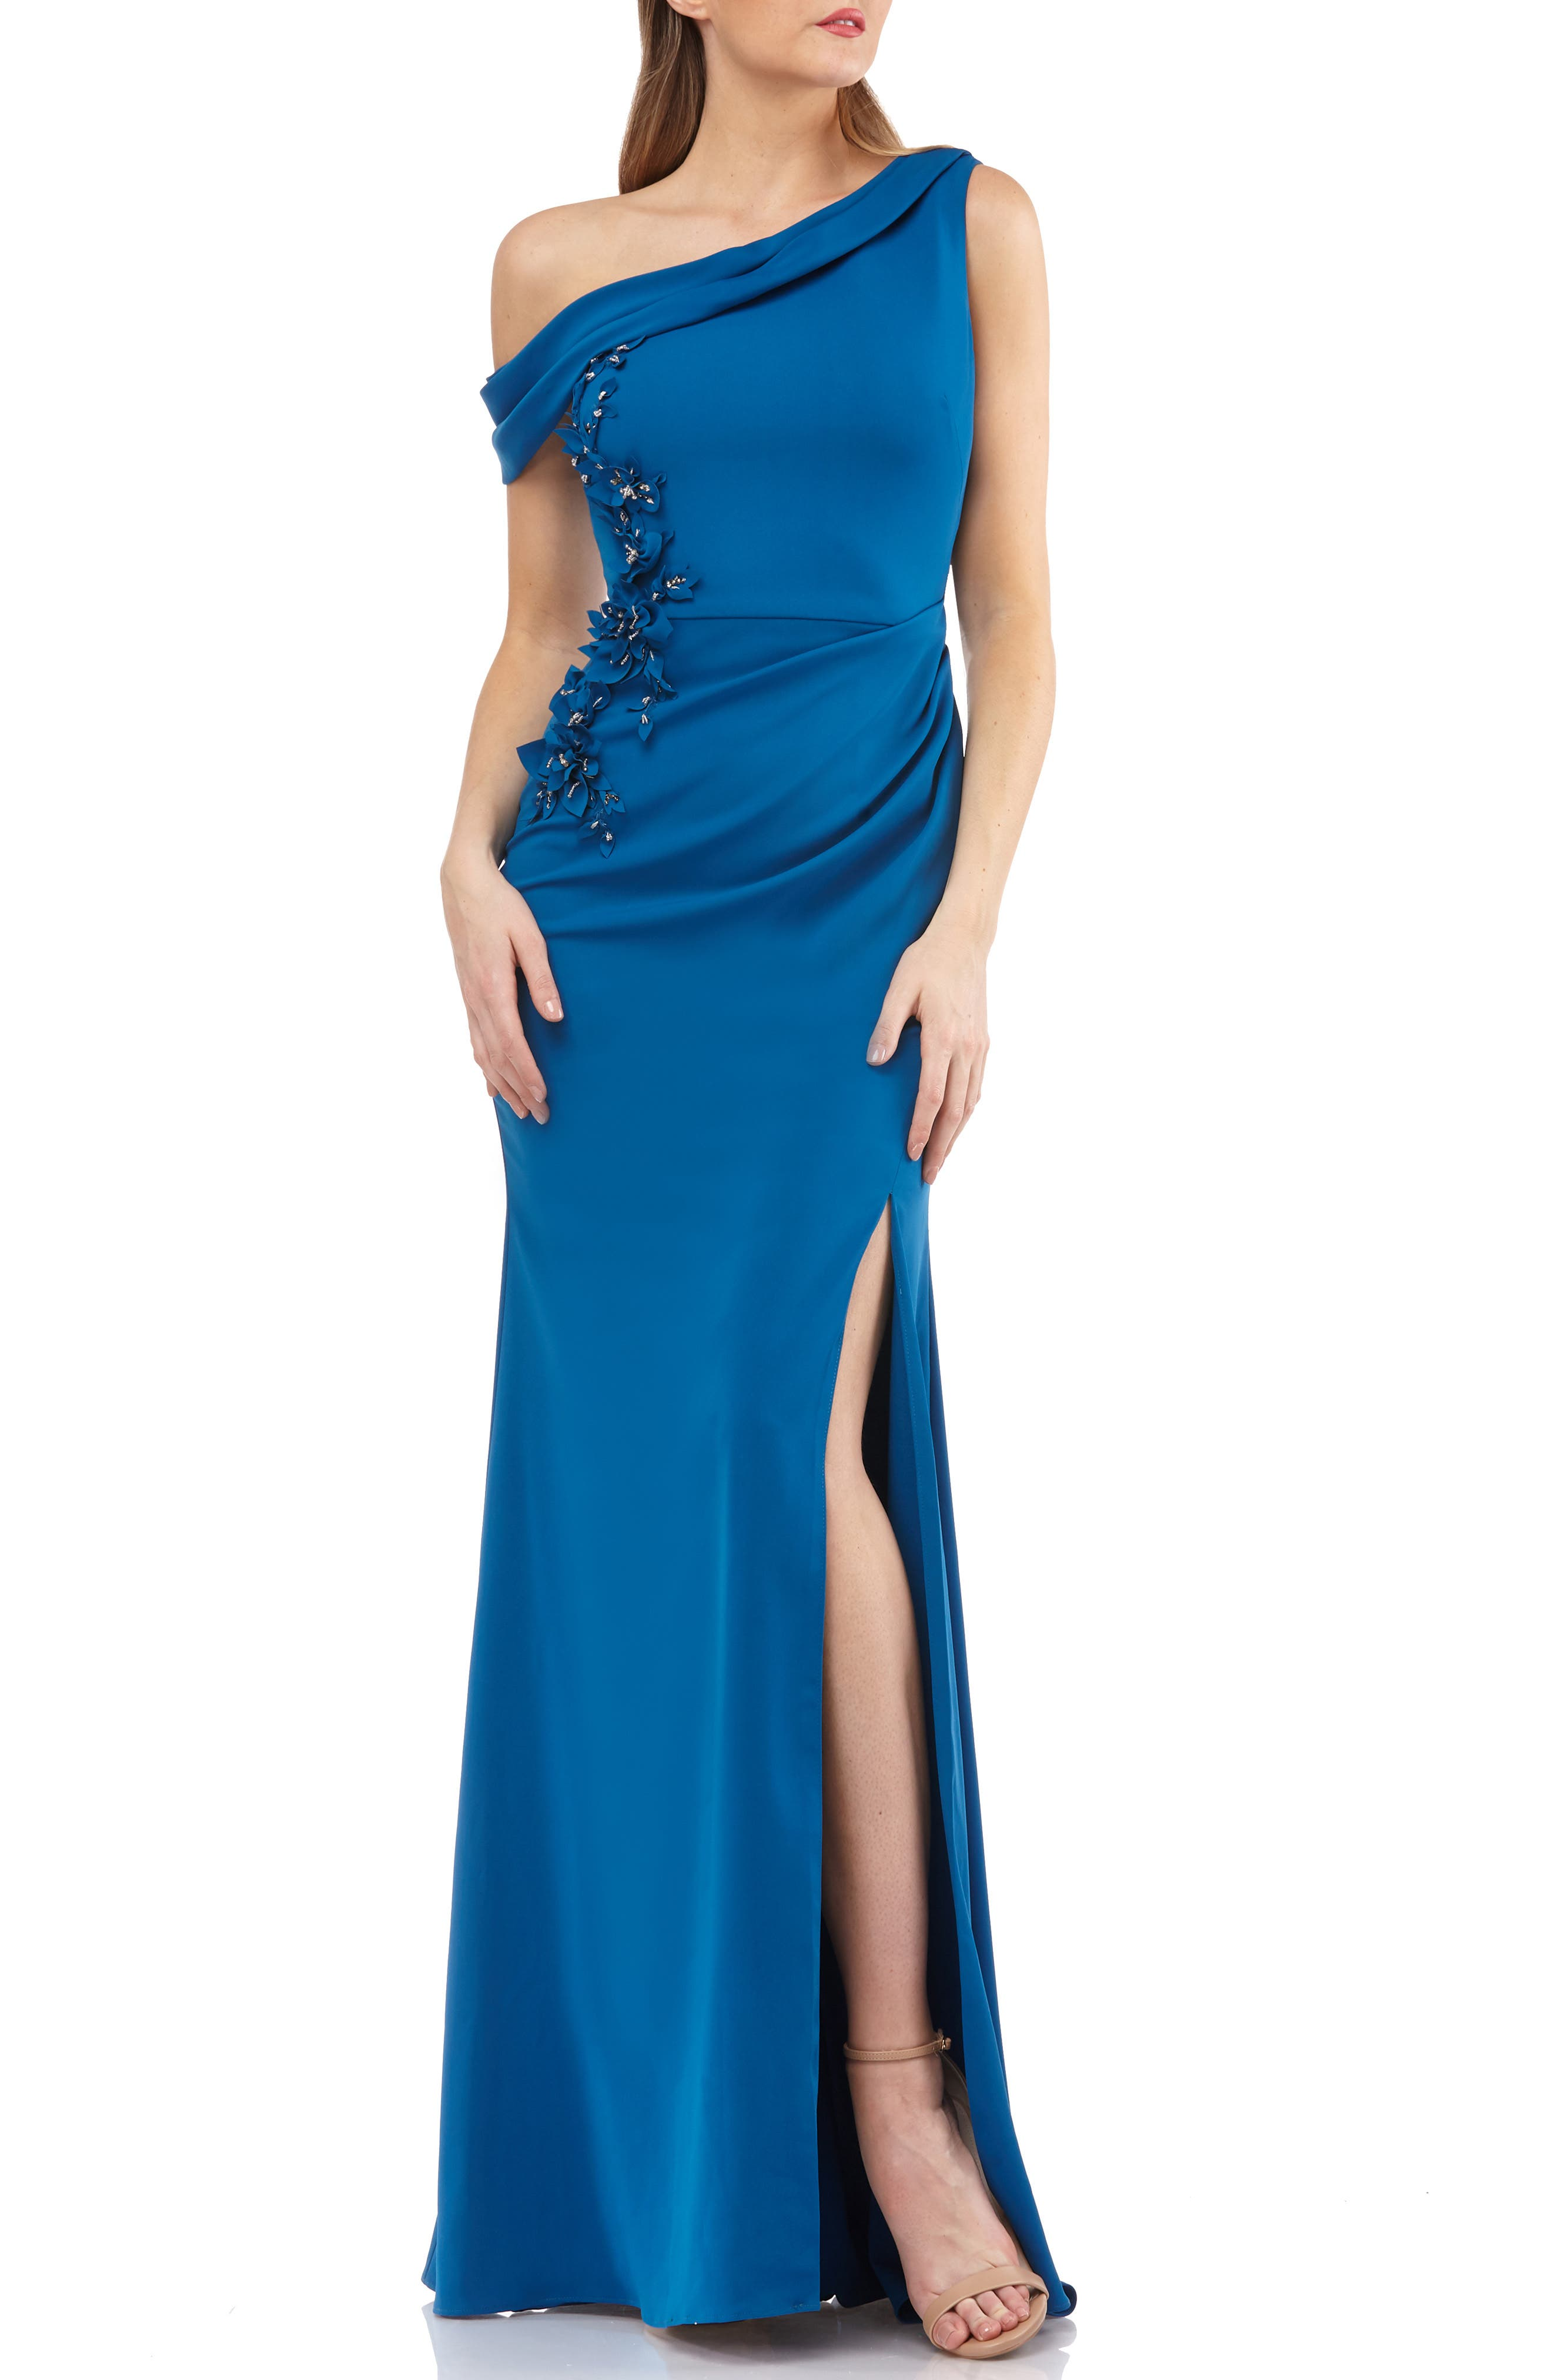 CARMEN MARC VALVO INFUSION One-Shoulder Crepe Gown in Persian Blue